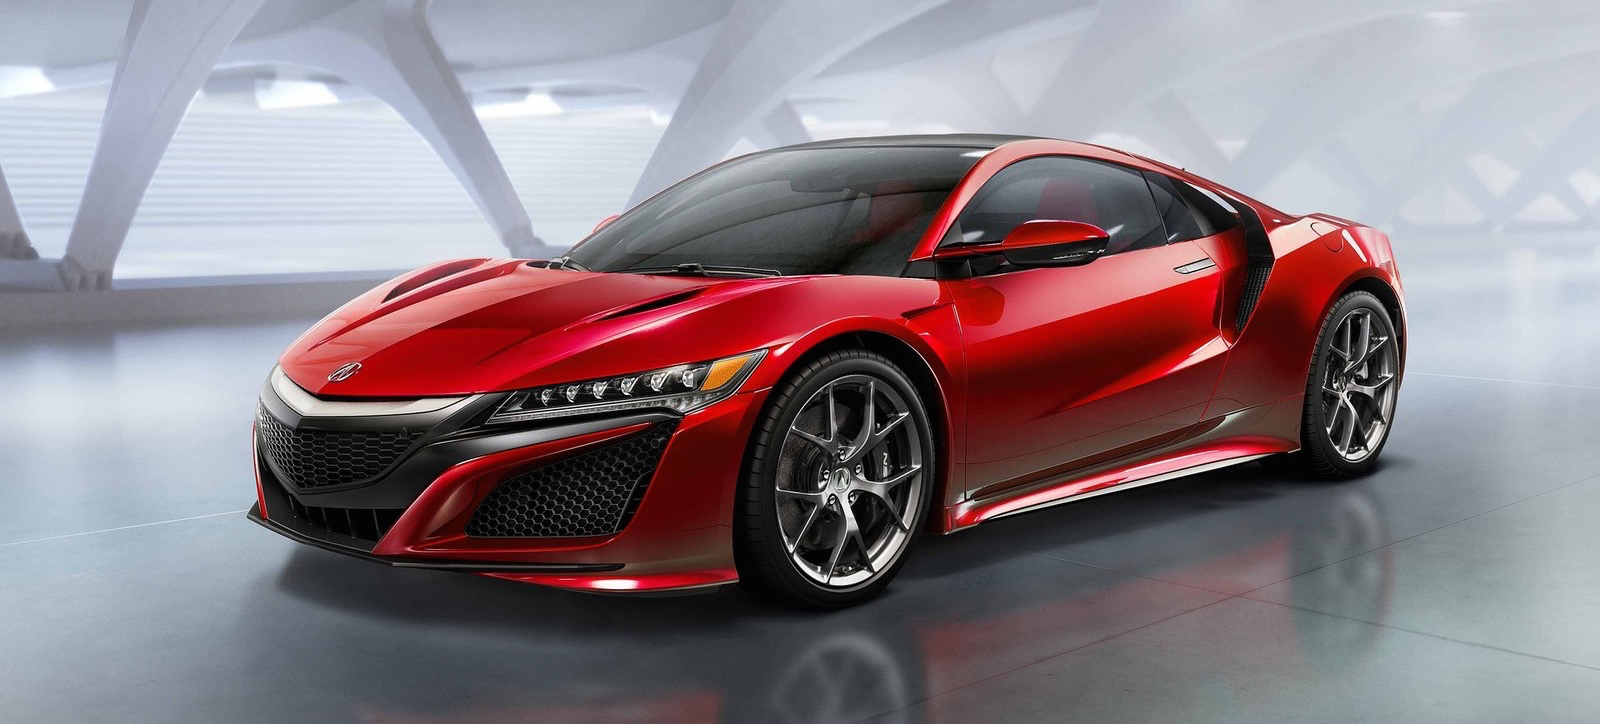 Merveilleux The Acura NSX Was Once A Game Changer In The Sports Car Segment. It Was A  Gorgeous Car That Had A High Quality Design And Was Made With Some Of The  Best ...